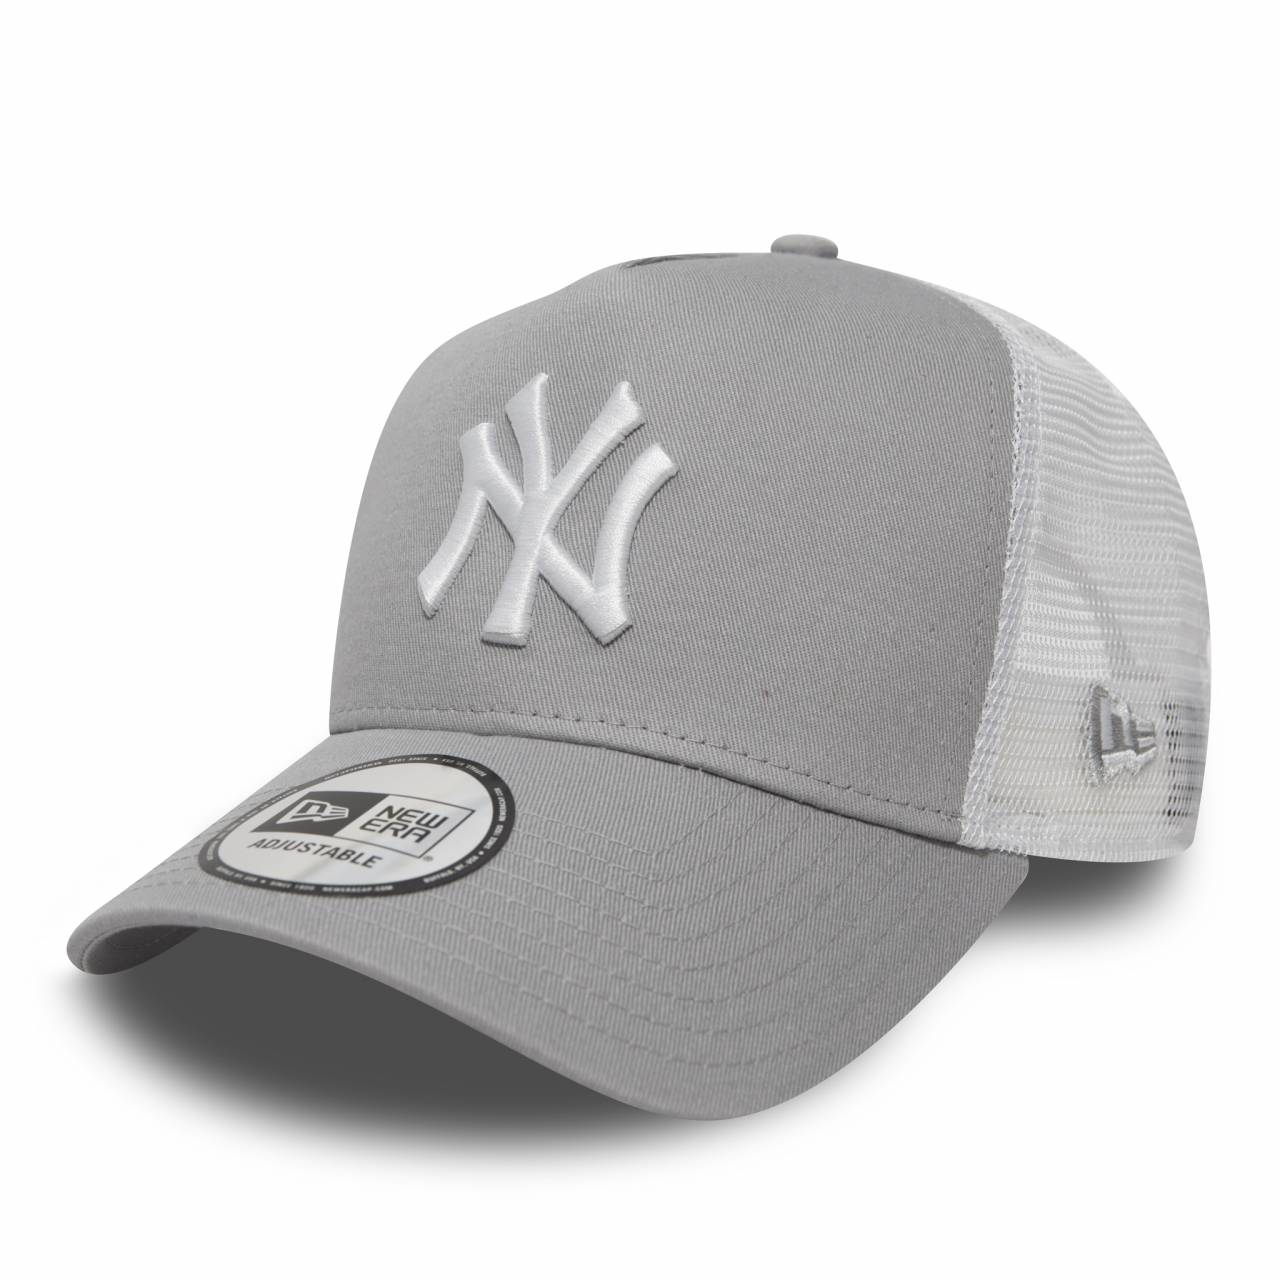 11588490 MLB TRUCKER NEW YORK YANKEES GREY/WHITE CAP